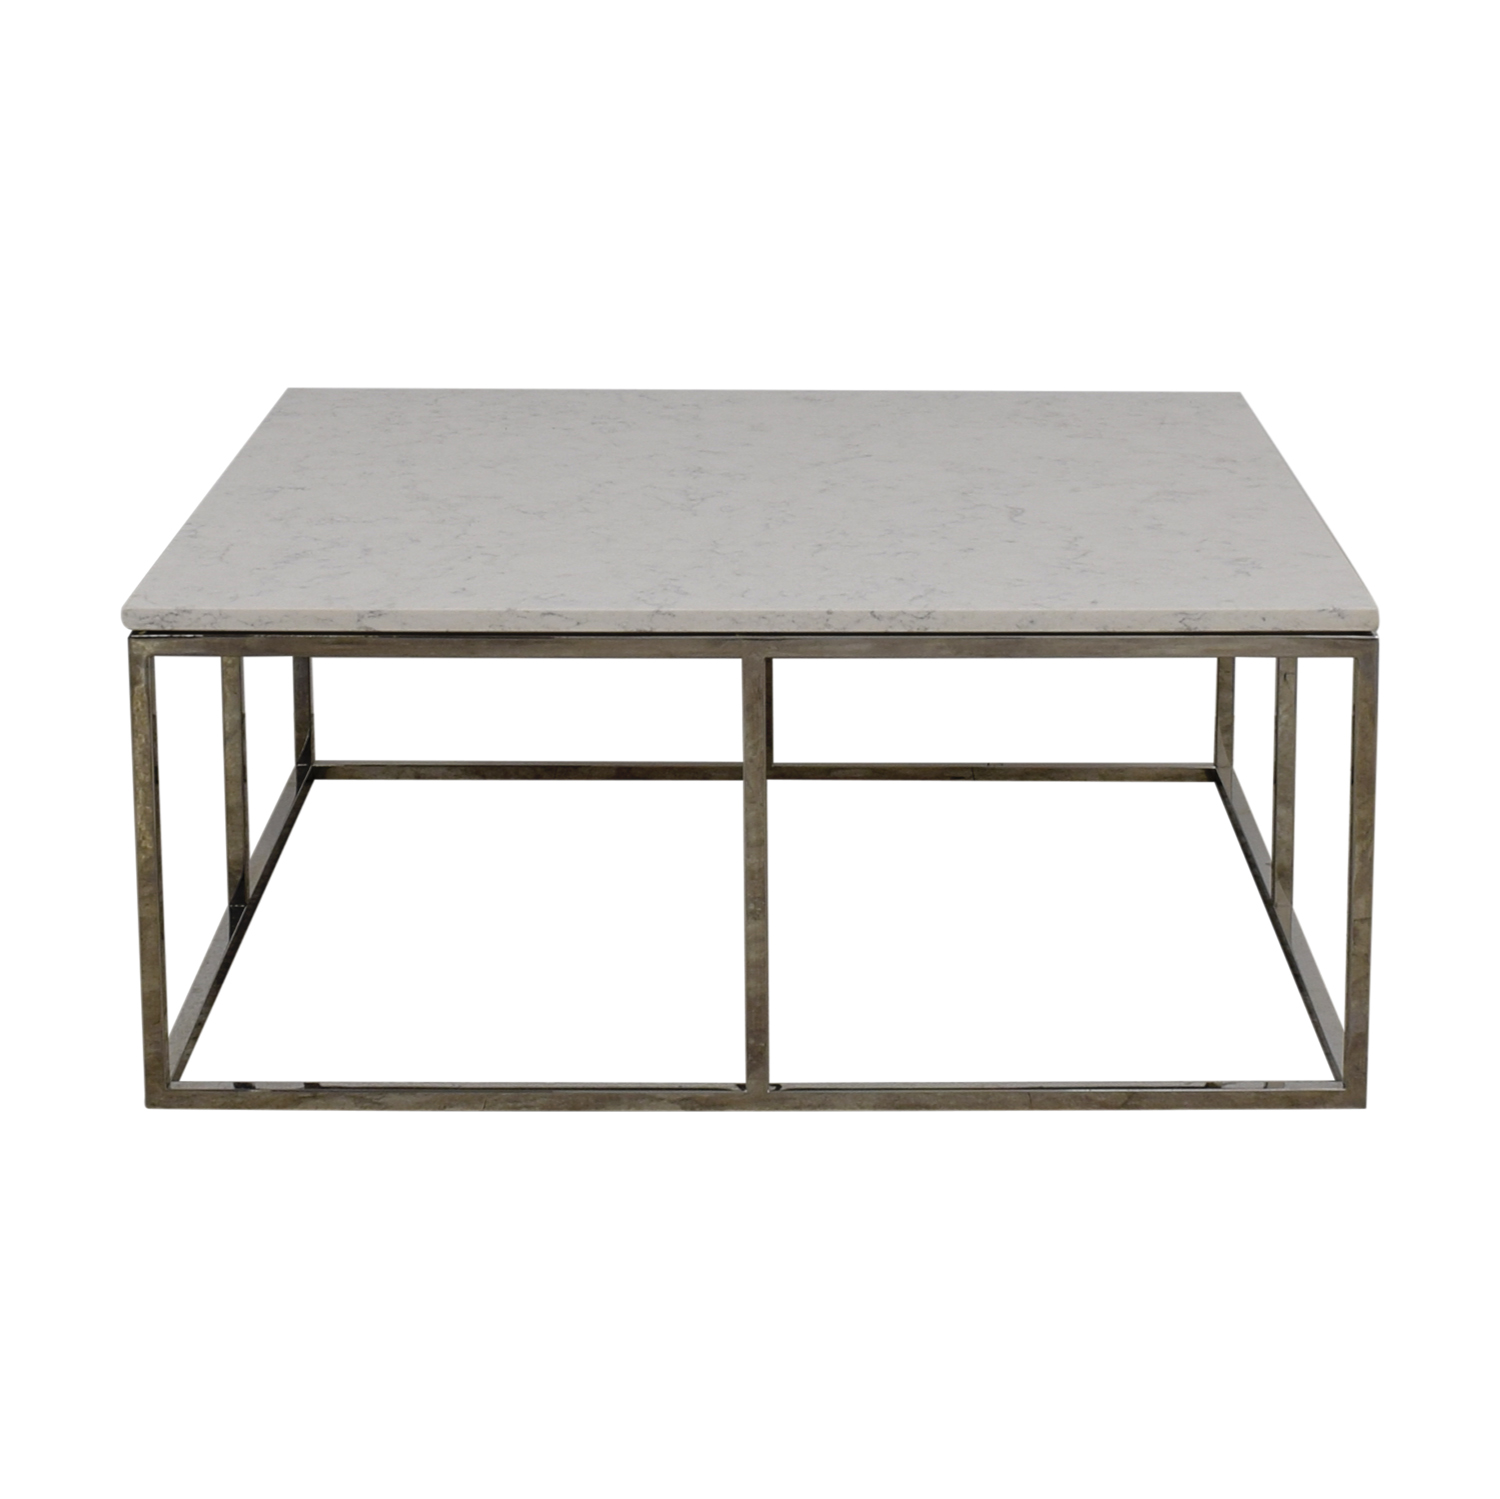 - 82% OFF - Room & Board Room & Board White Marble Coffee Table / Tables